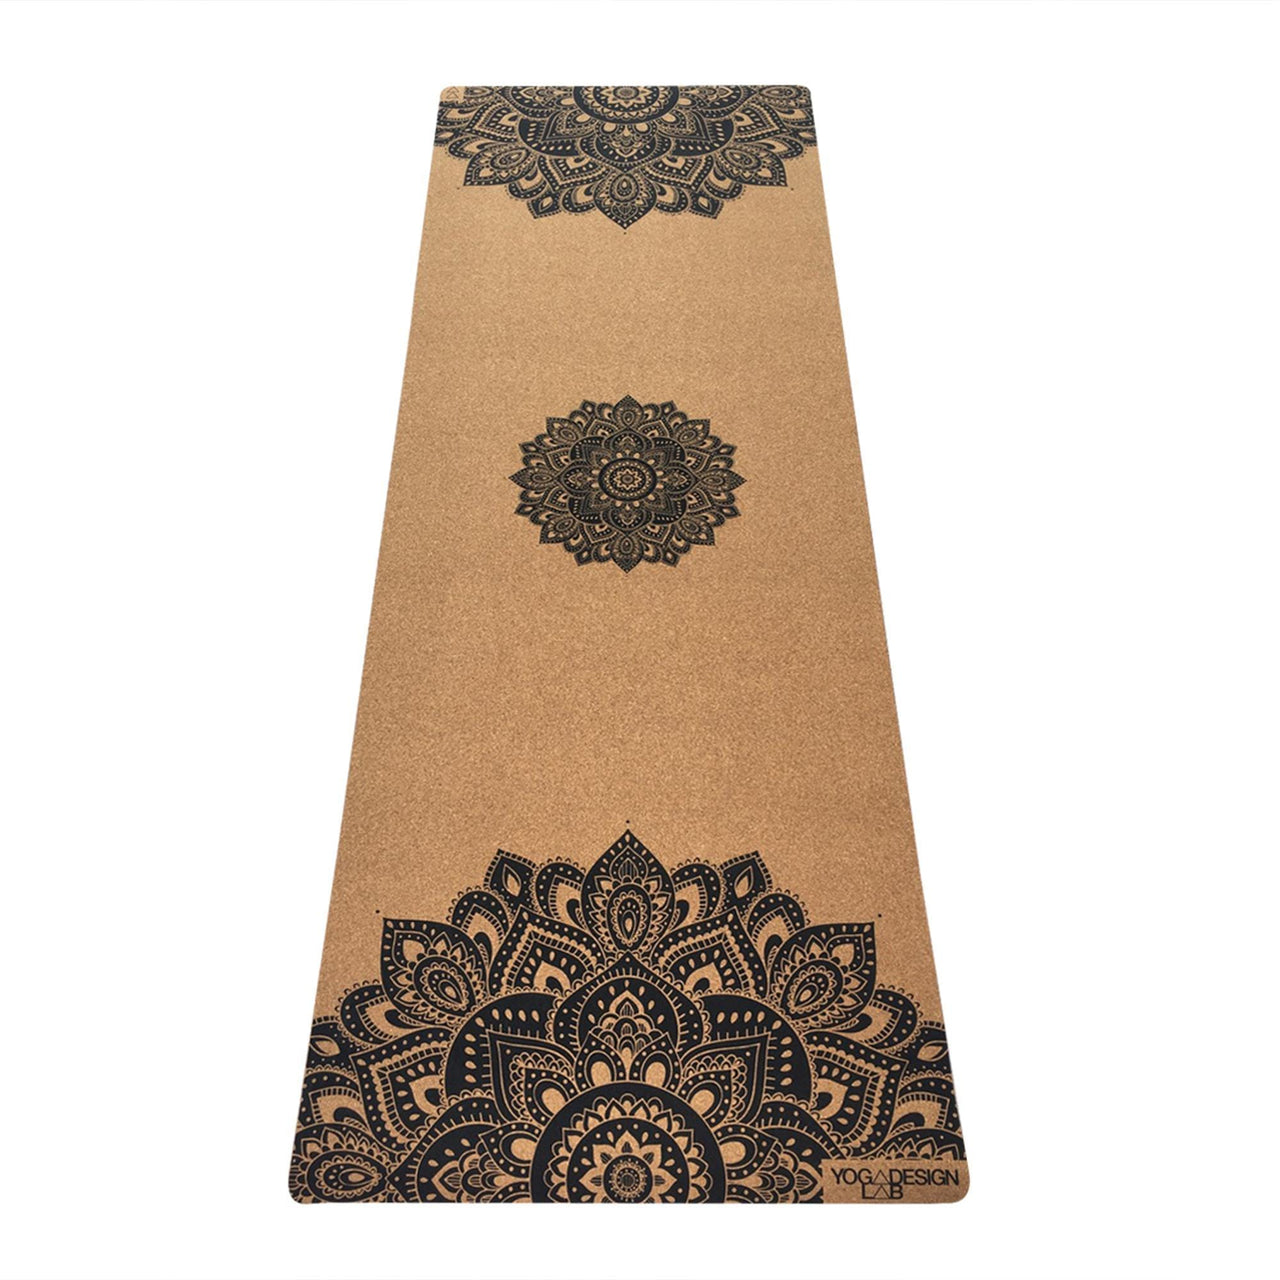 Yoga Design Lab Yoga Mandala Black 3.5mm Cork Yoga Mat